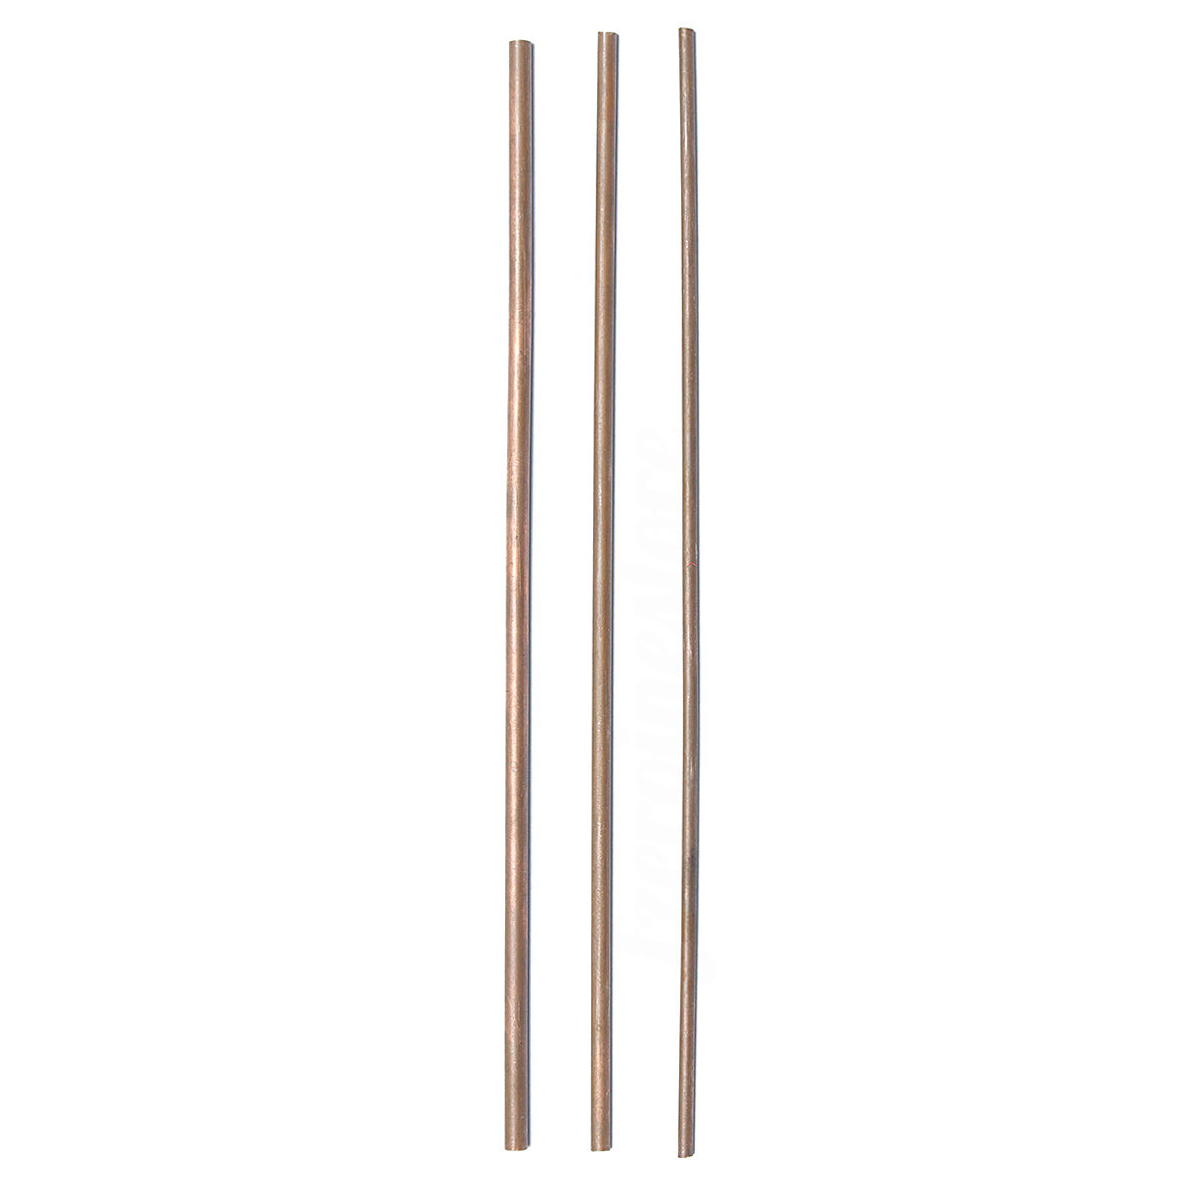 1pc High Purity Copper Tube DIY Plumbing Pipe Rod 3mm/4mm/5mm Inner Diameter 300mm Length 80x2mm copper end feed euqal tee 3 way pipe fitting plumbing for gas water oil